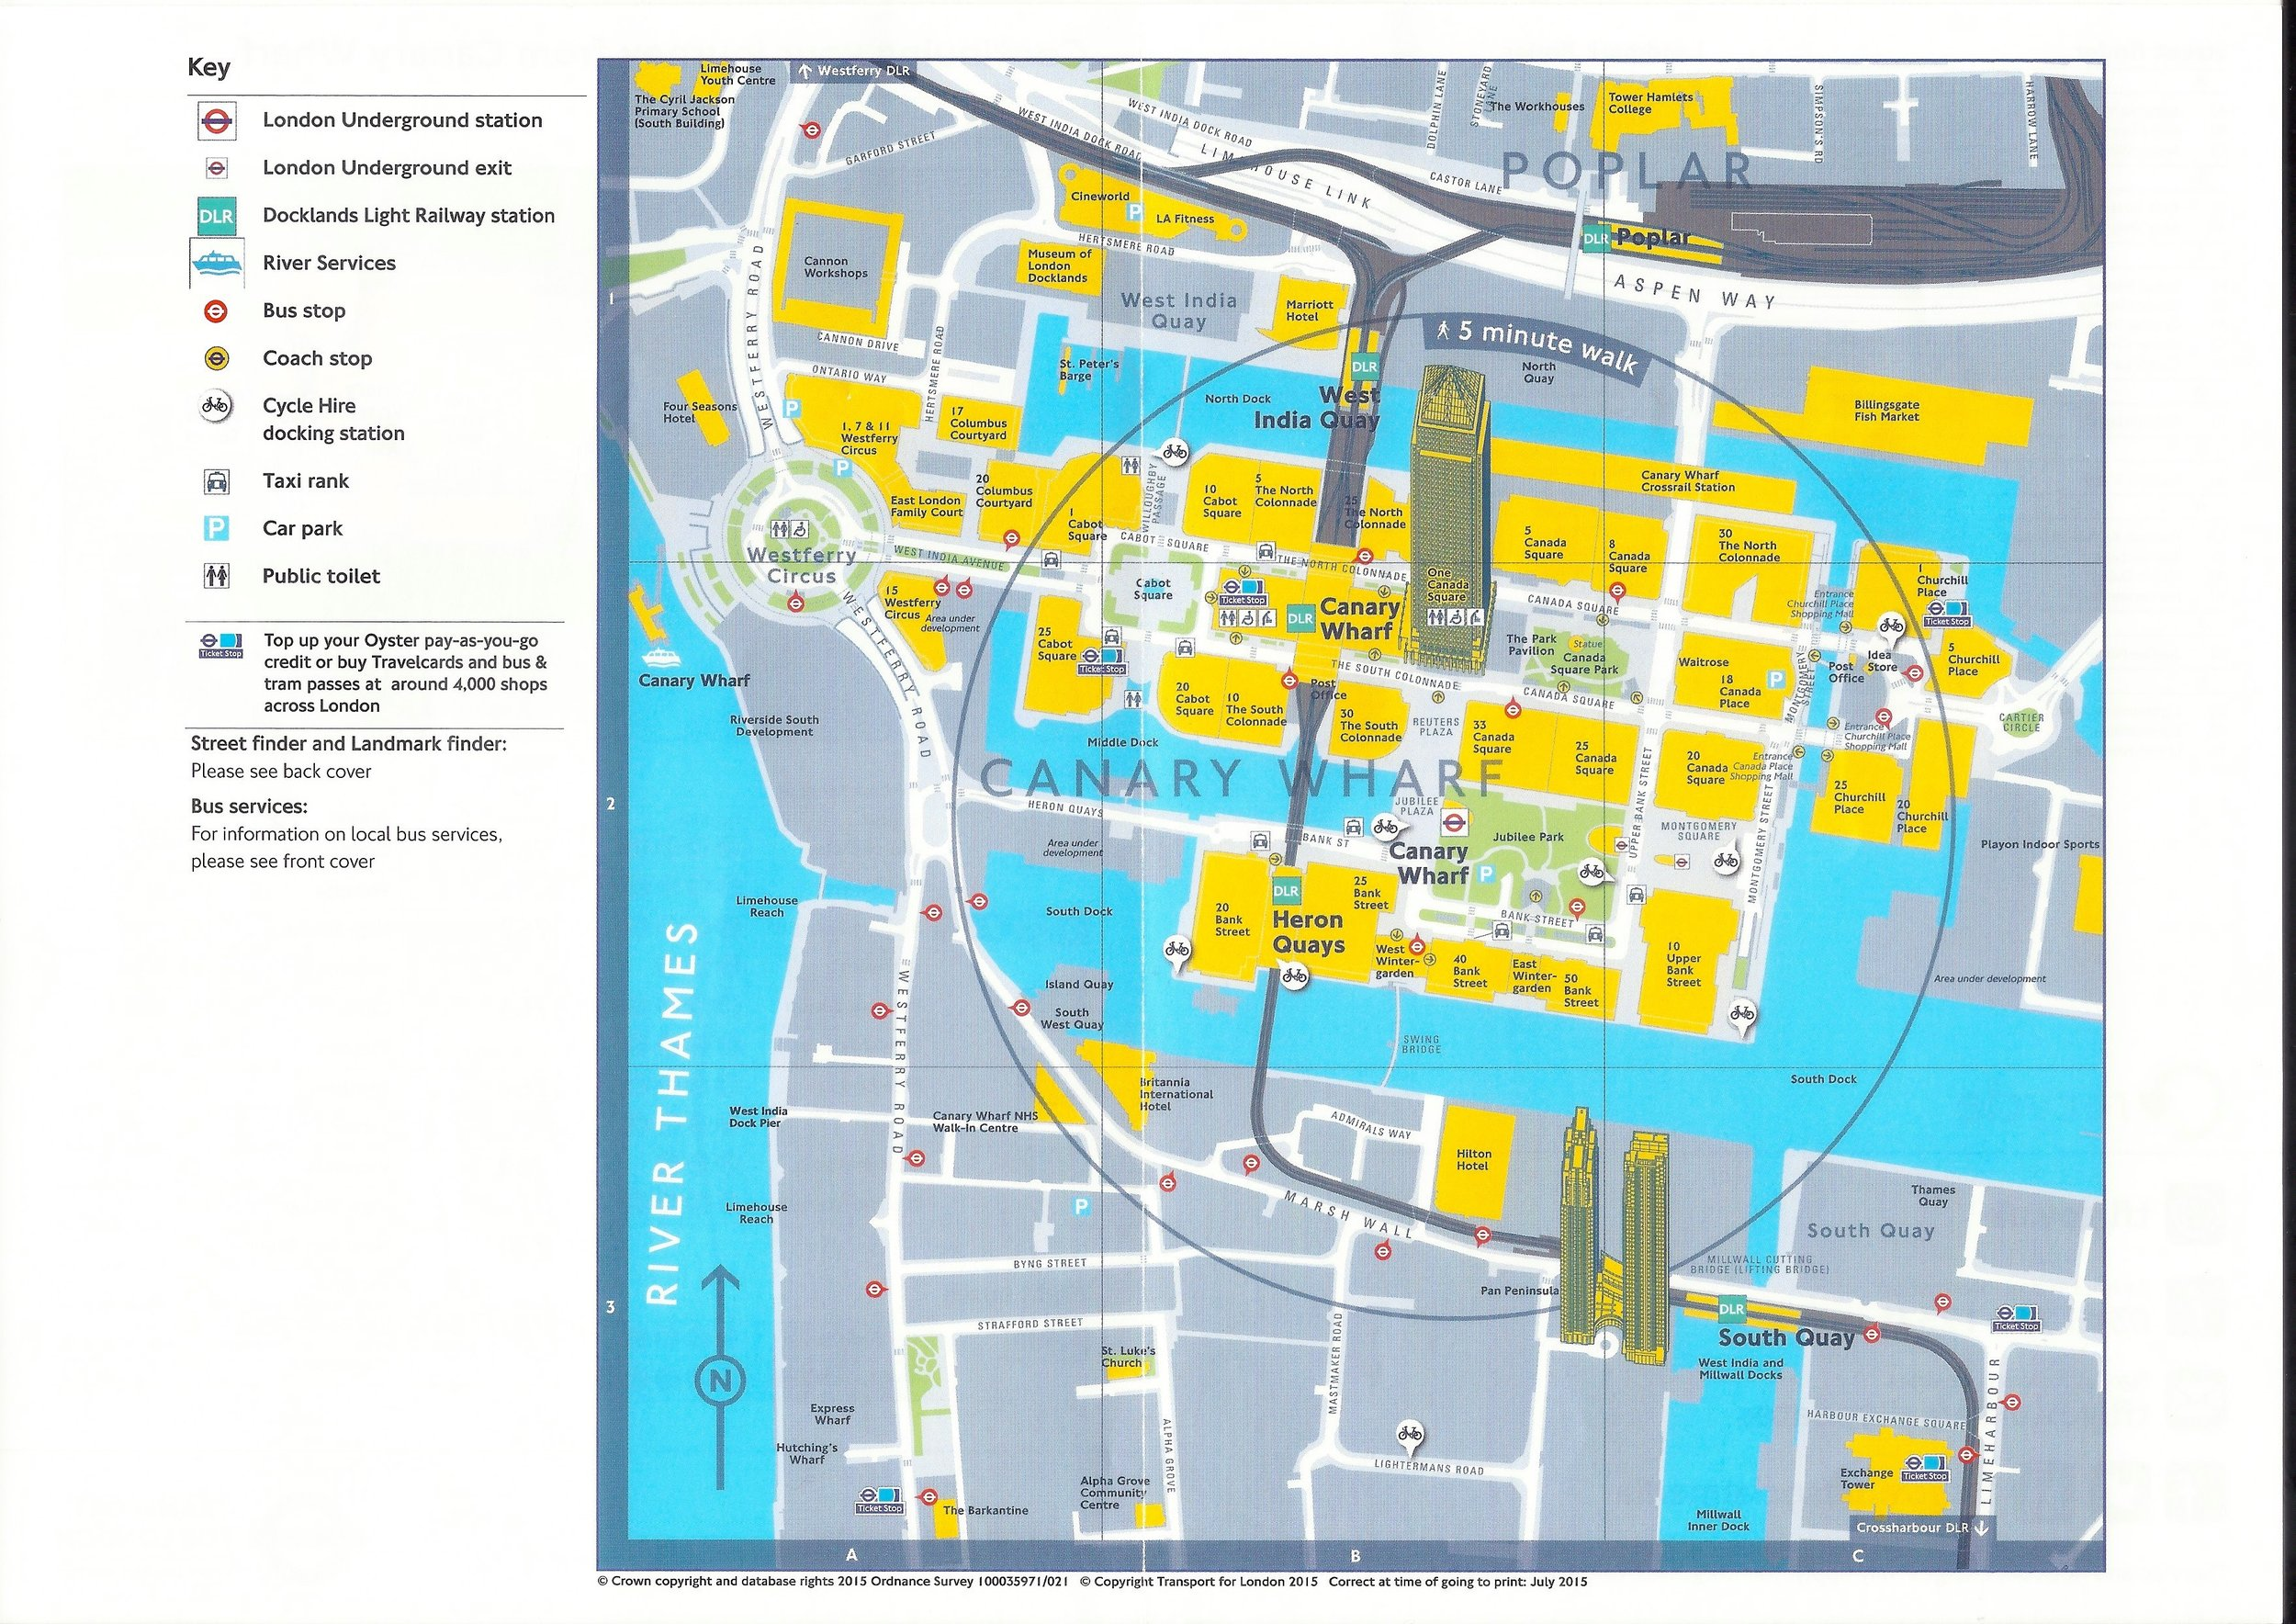 map of the Canary Wharf area. canary riverside is located top left. nb four SEASONs hotel now known as canary riverside plaza